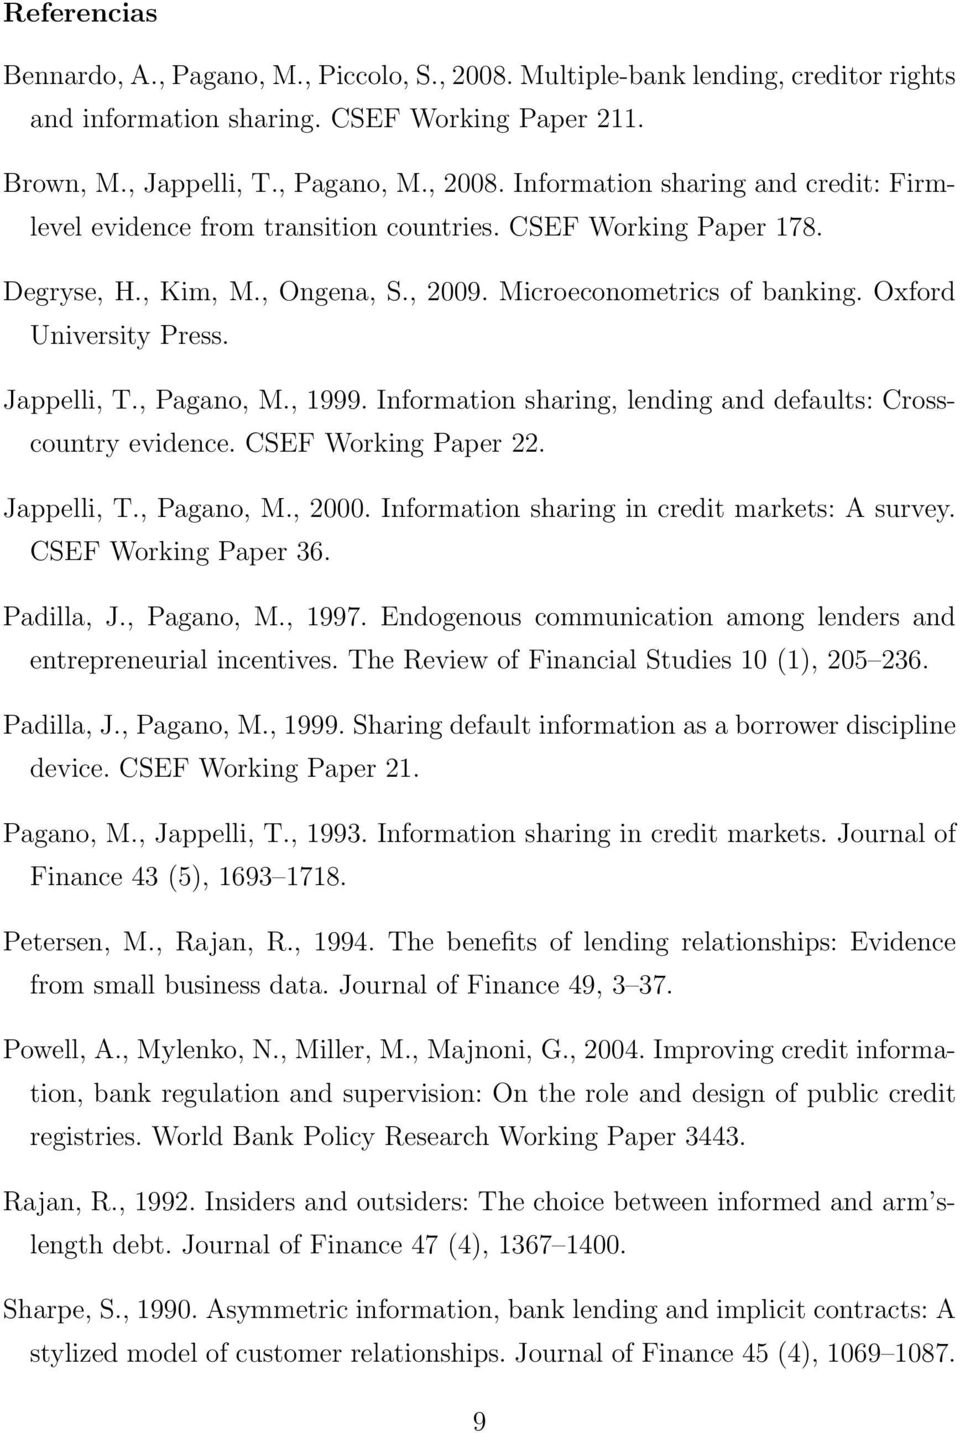 Information sharing, lending and defaults: Crosscountry evidence. CSEF Working Paper 22. Jappelli, T., Pagano, M., 2000. Information sharing in credit markets: A survey. CSEF Working Paper 36.